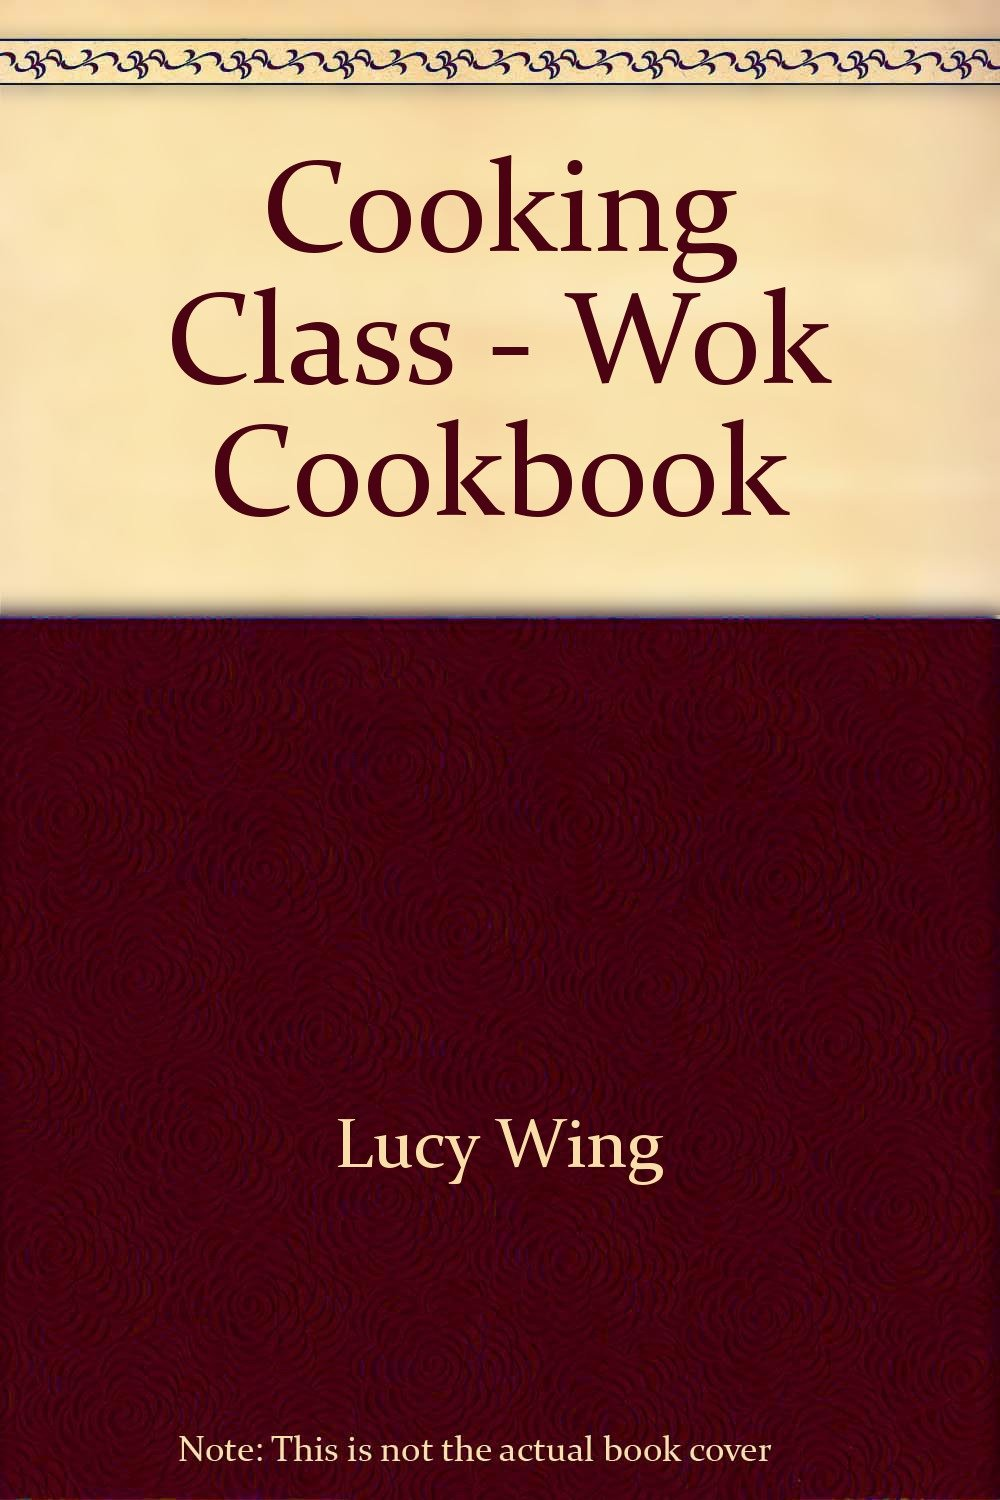 Cooking Class Wok Cookbook by Pub Intnl